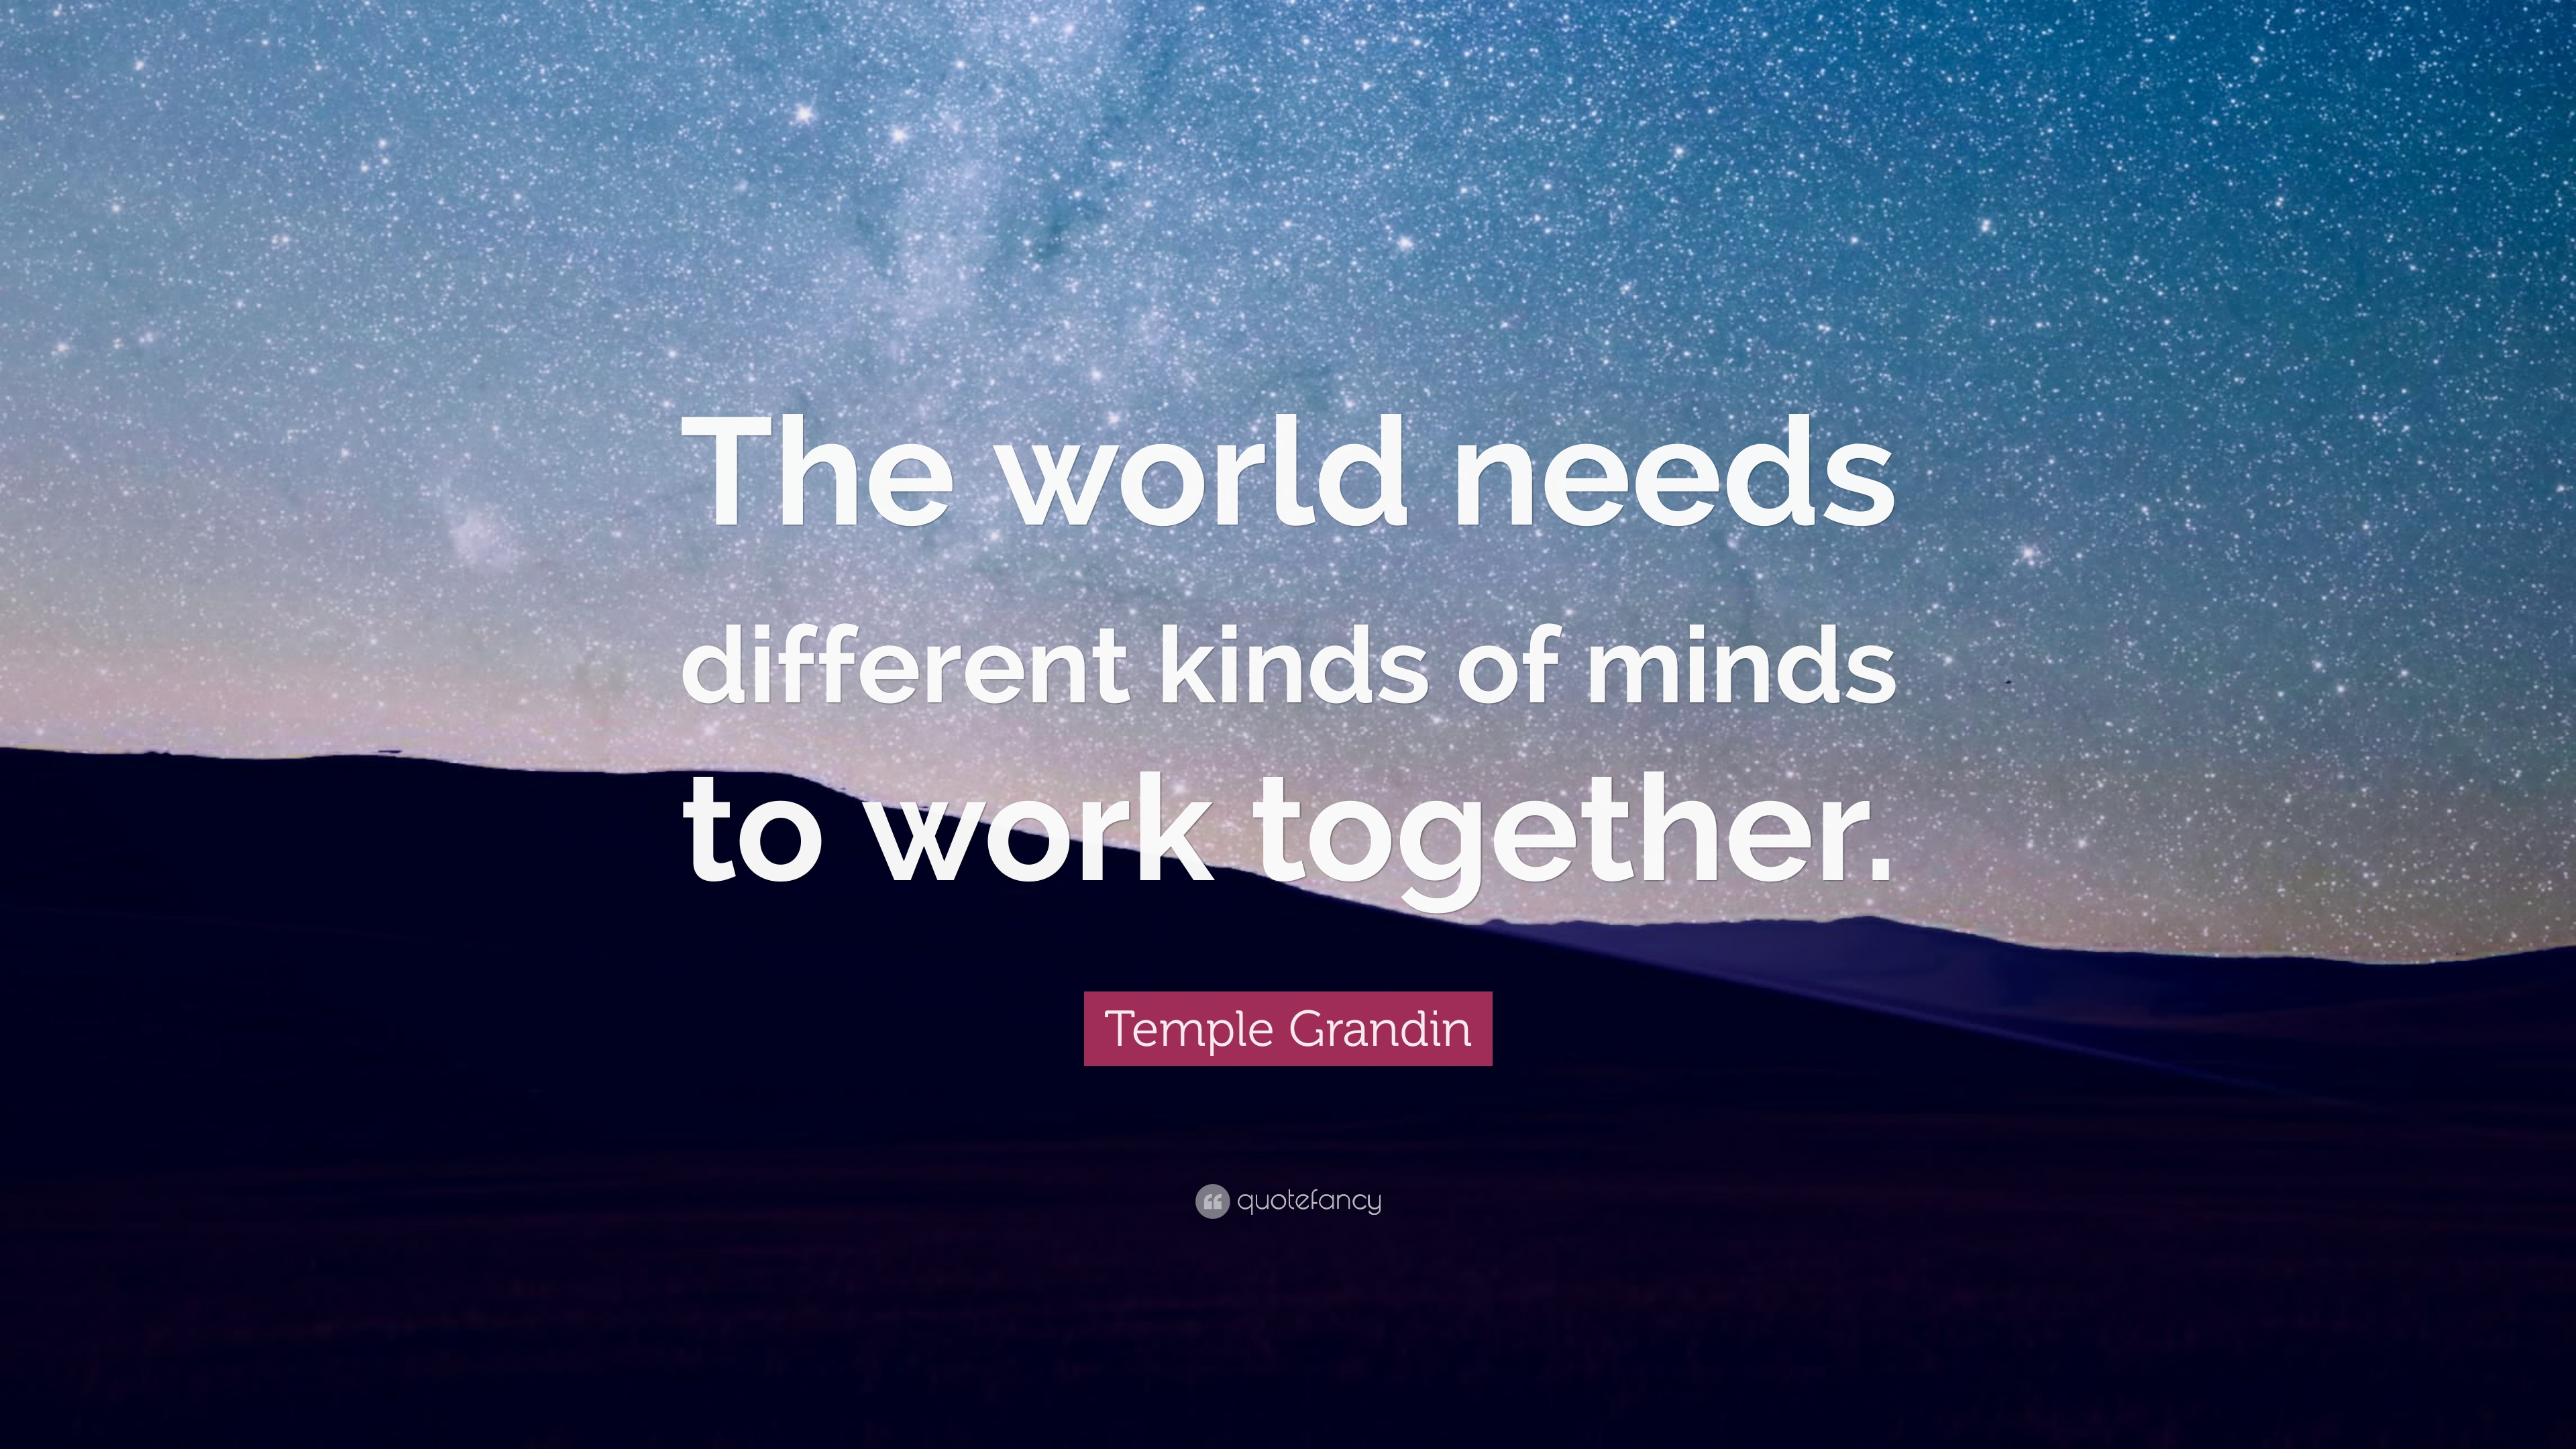 temple grandin quote the world needs different kinds of minds to